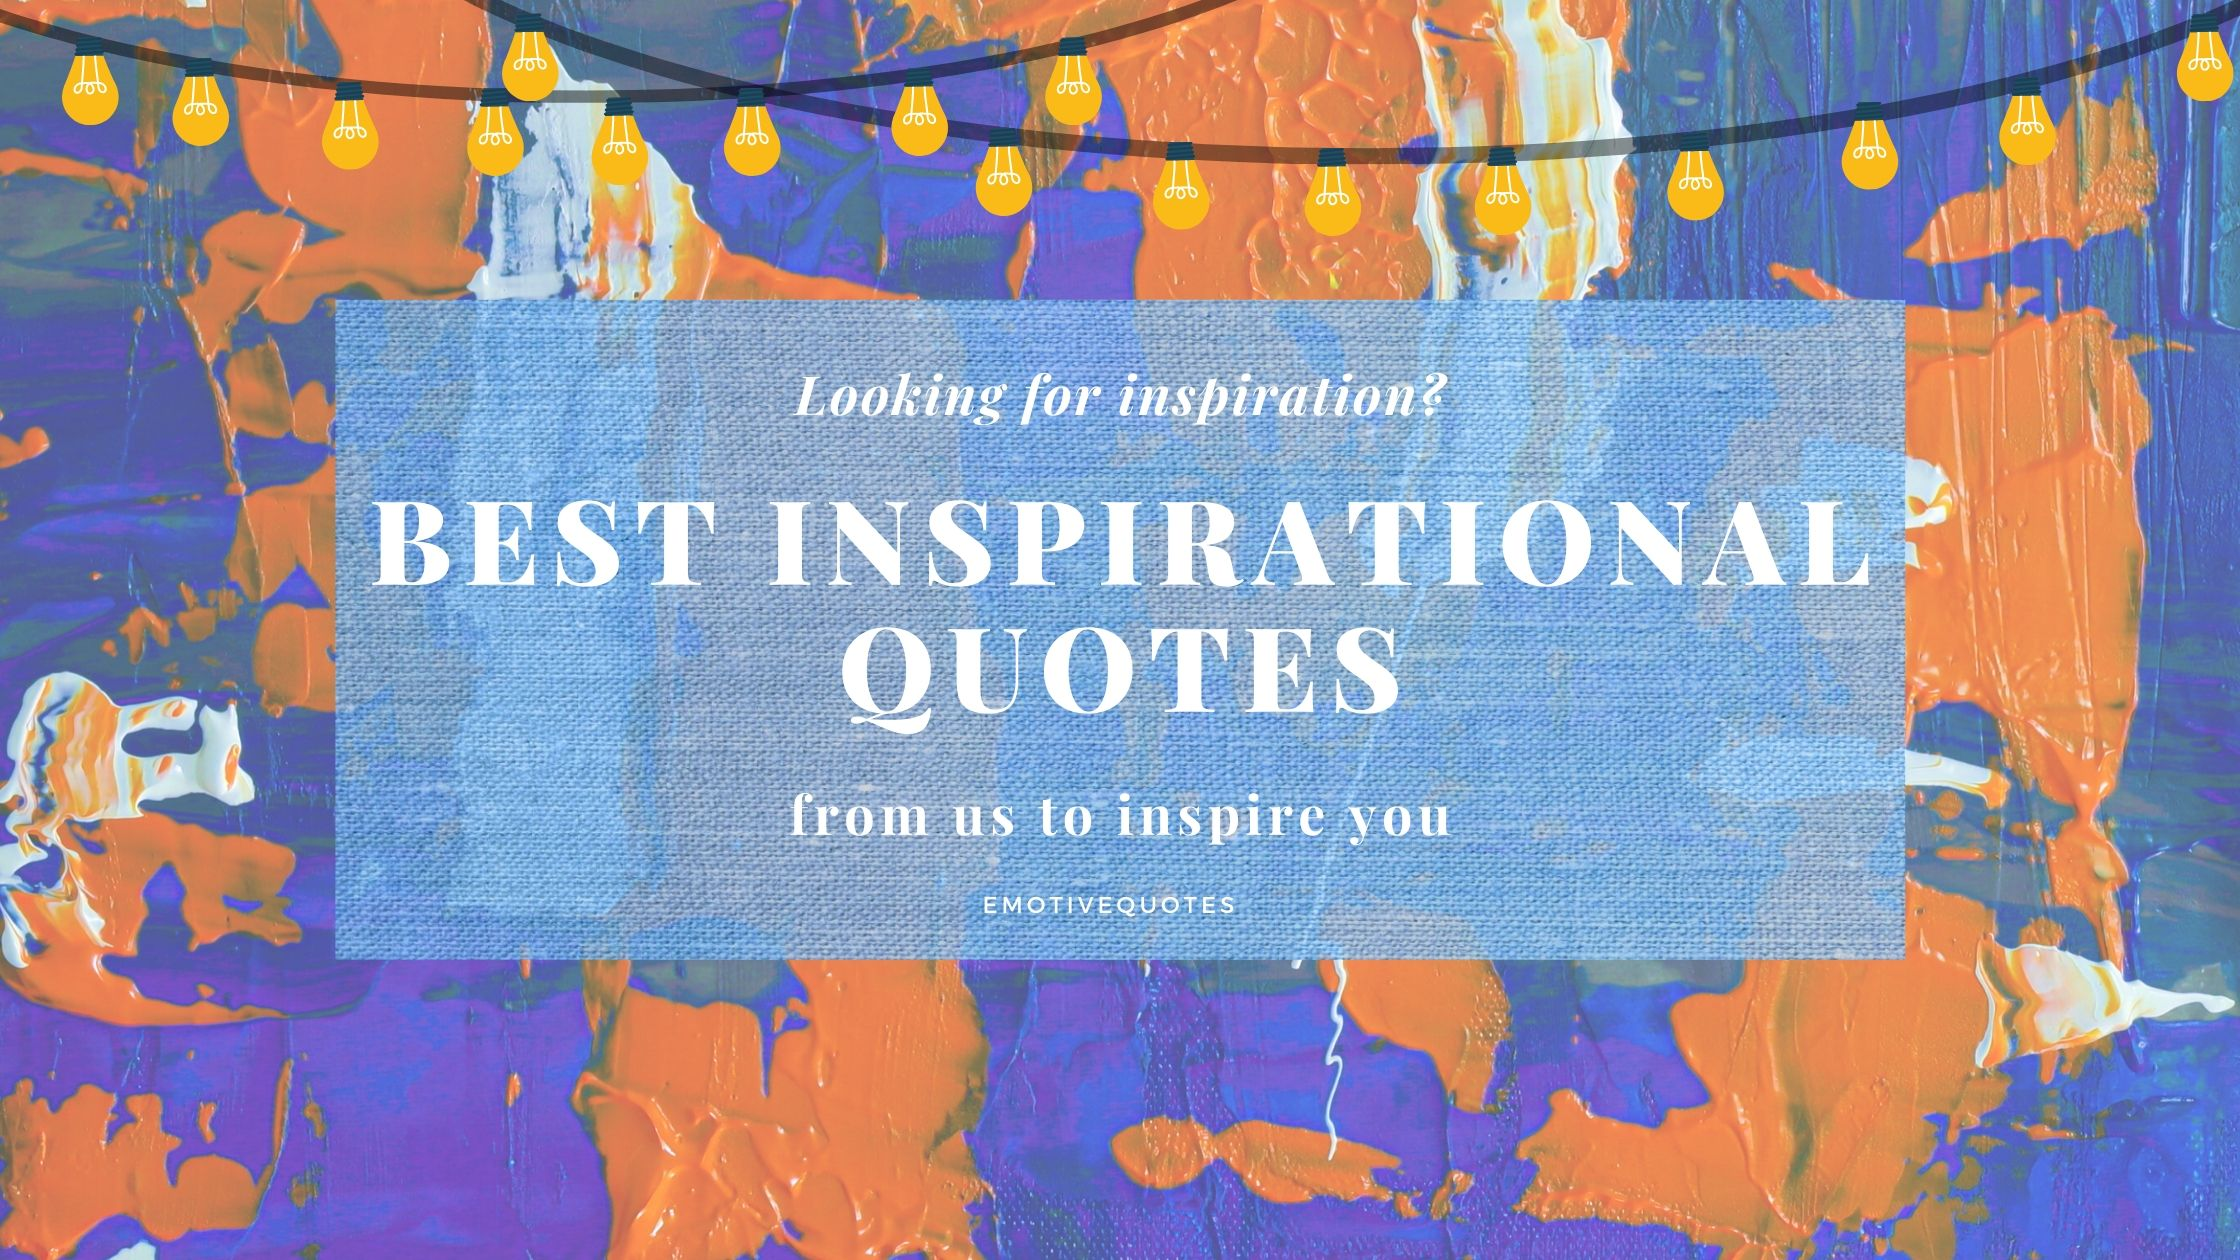 Emotive-quotes-best-inspirational-quotes